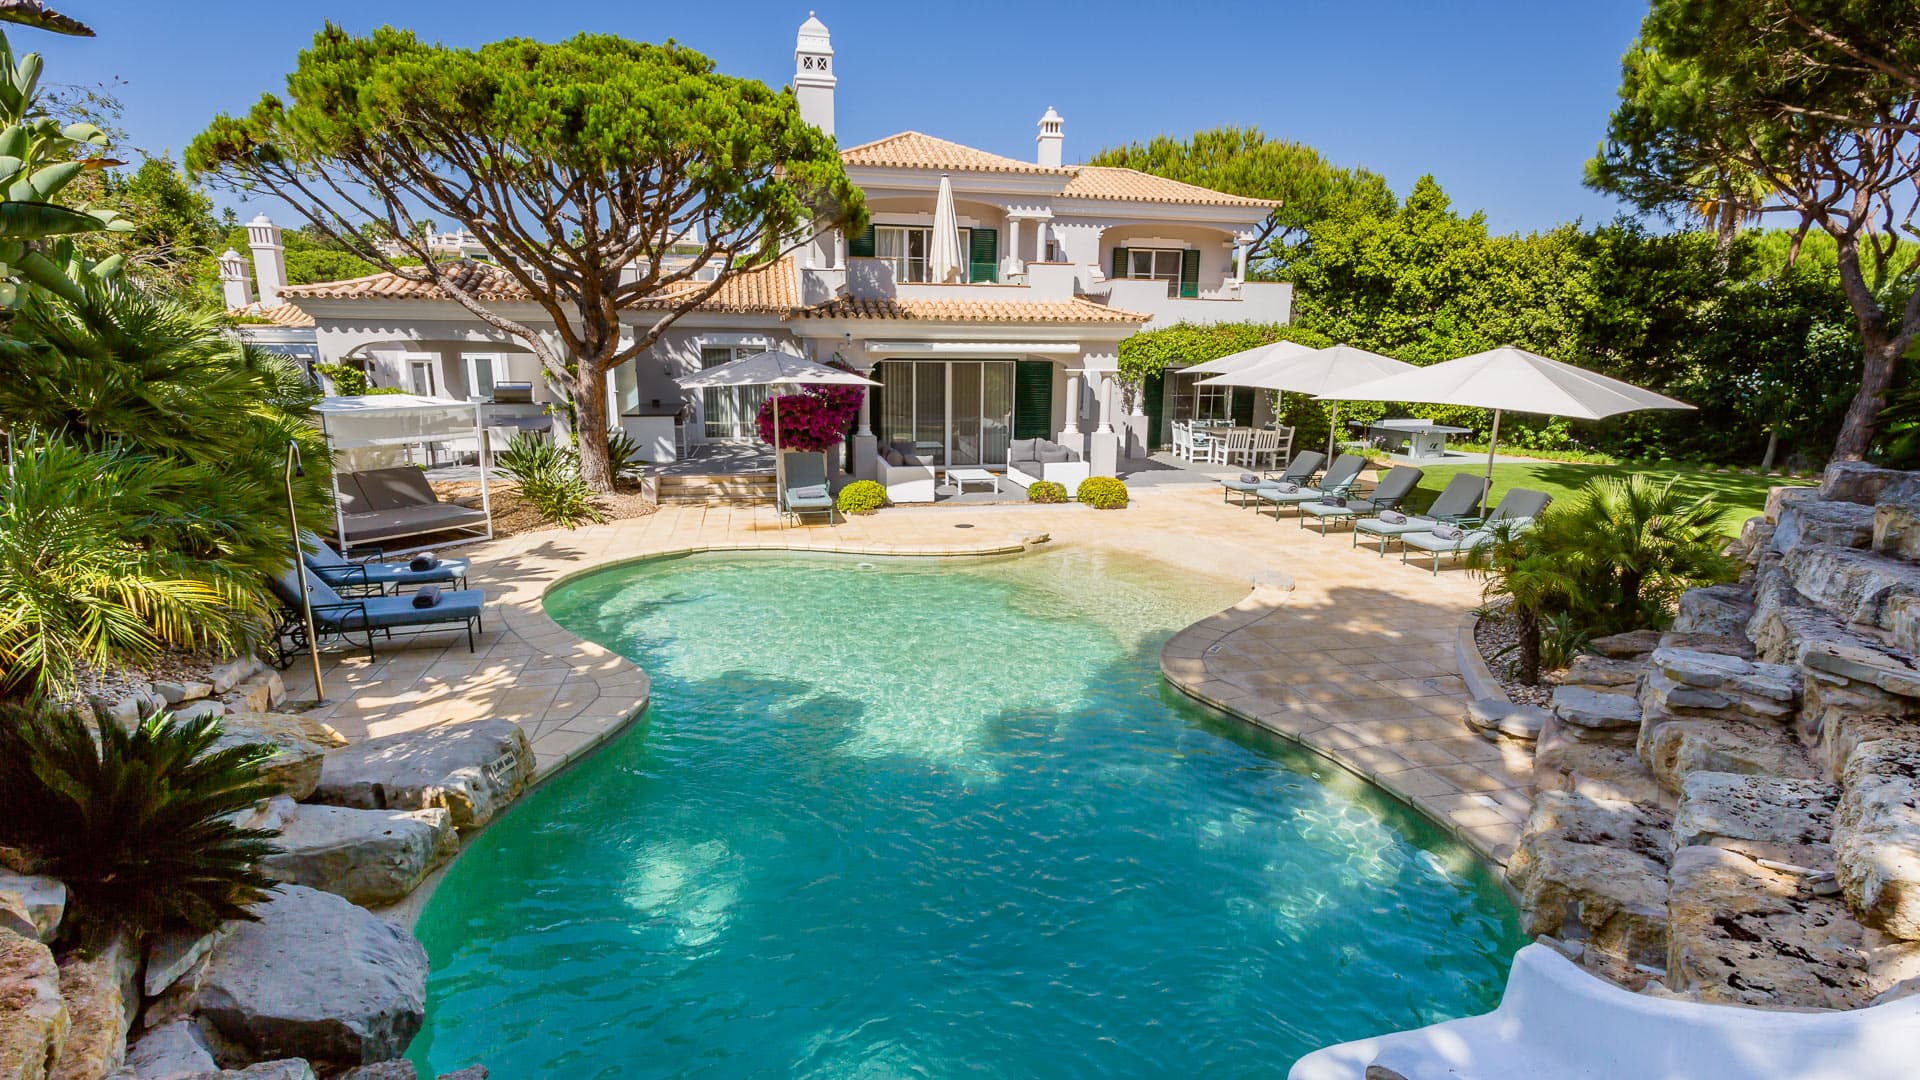 Villa Villa Kyanite, Rental in Algarve